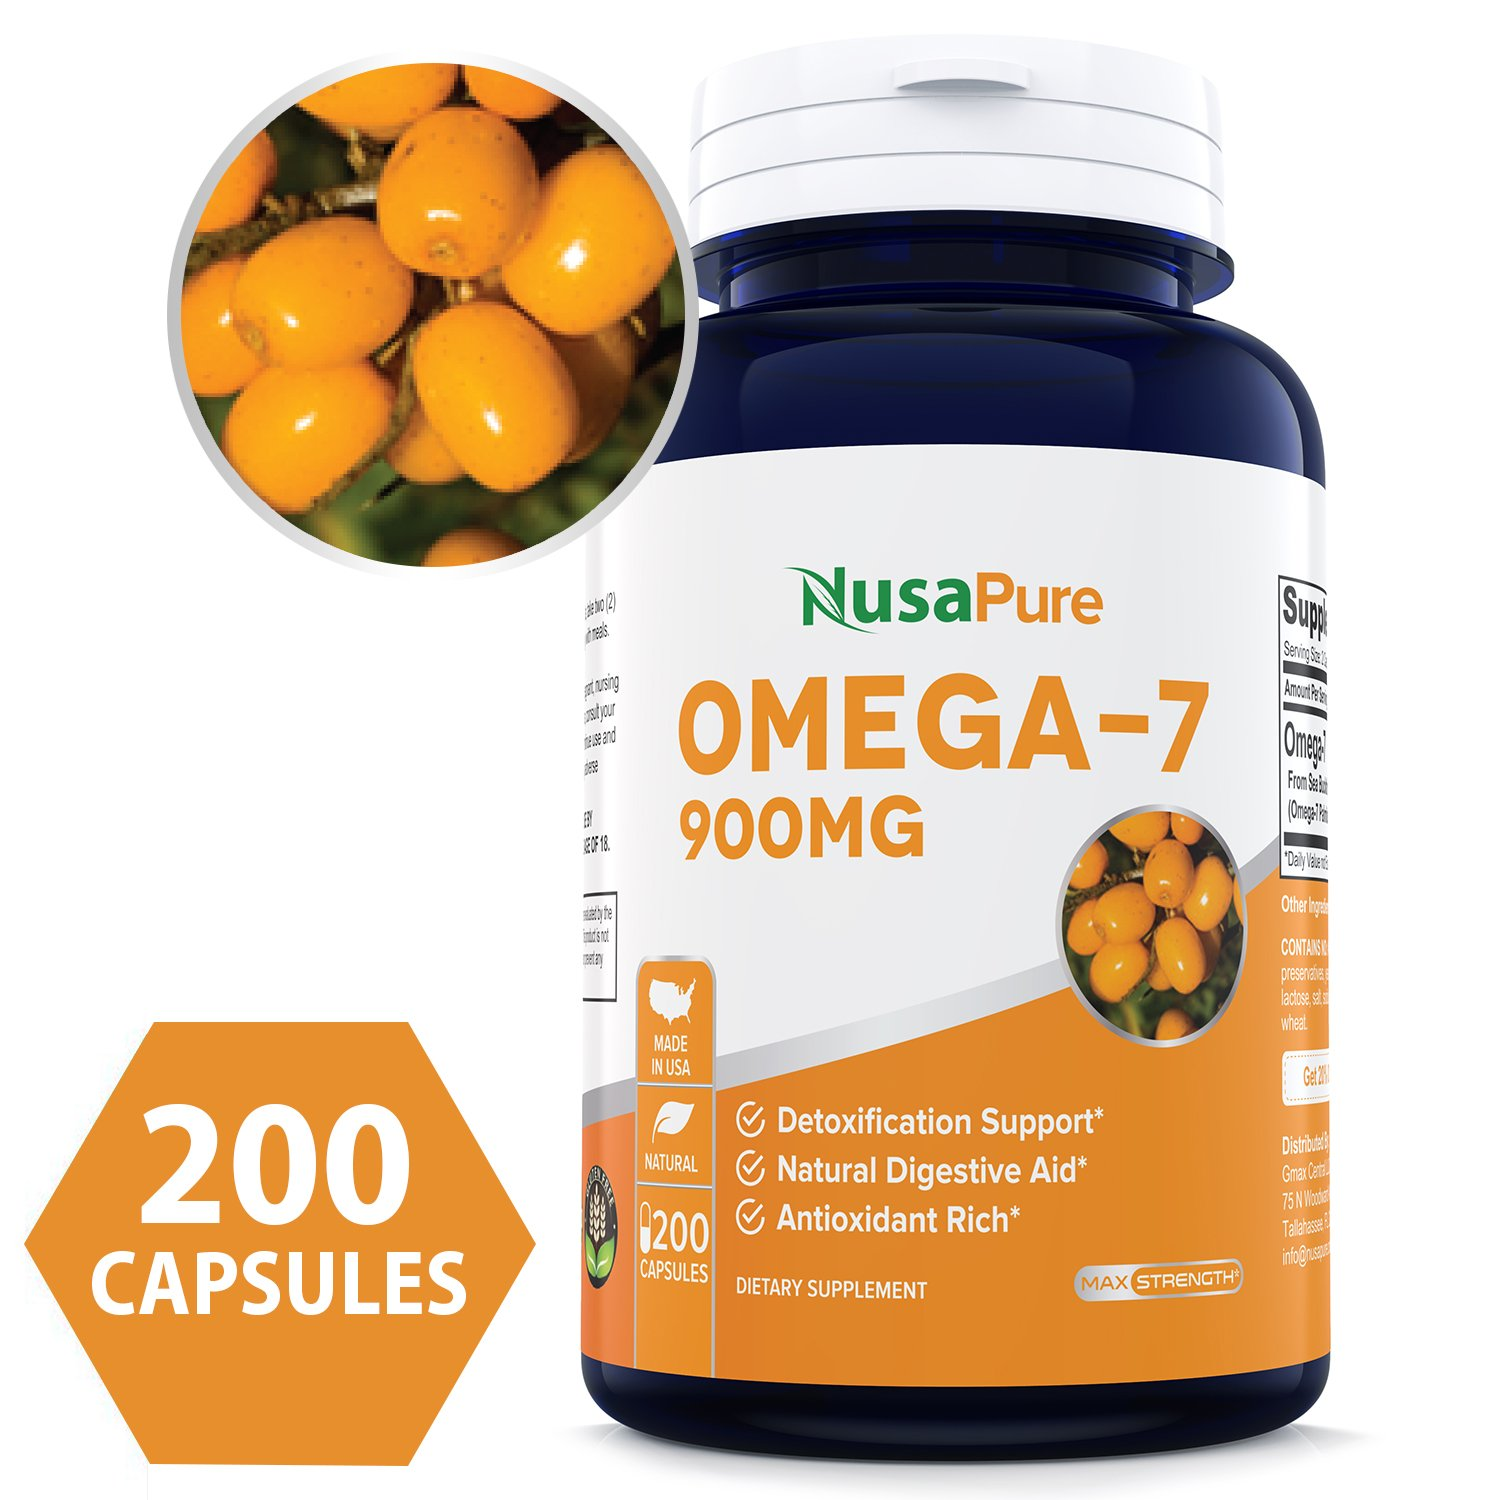 Best Purified Omega 7 Fatty Acids 900mg 200 Capsules (Non-GMO Gluten Free) Natural Sea Buckthorn Oil, No Fish Burp, Omega-7 Palmitoleic Acid, Omega 3 6 9 Weight Loss - 100% Money Back Guarantee